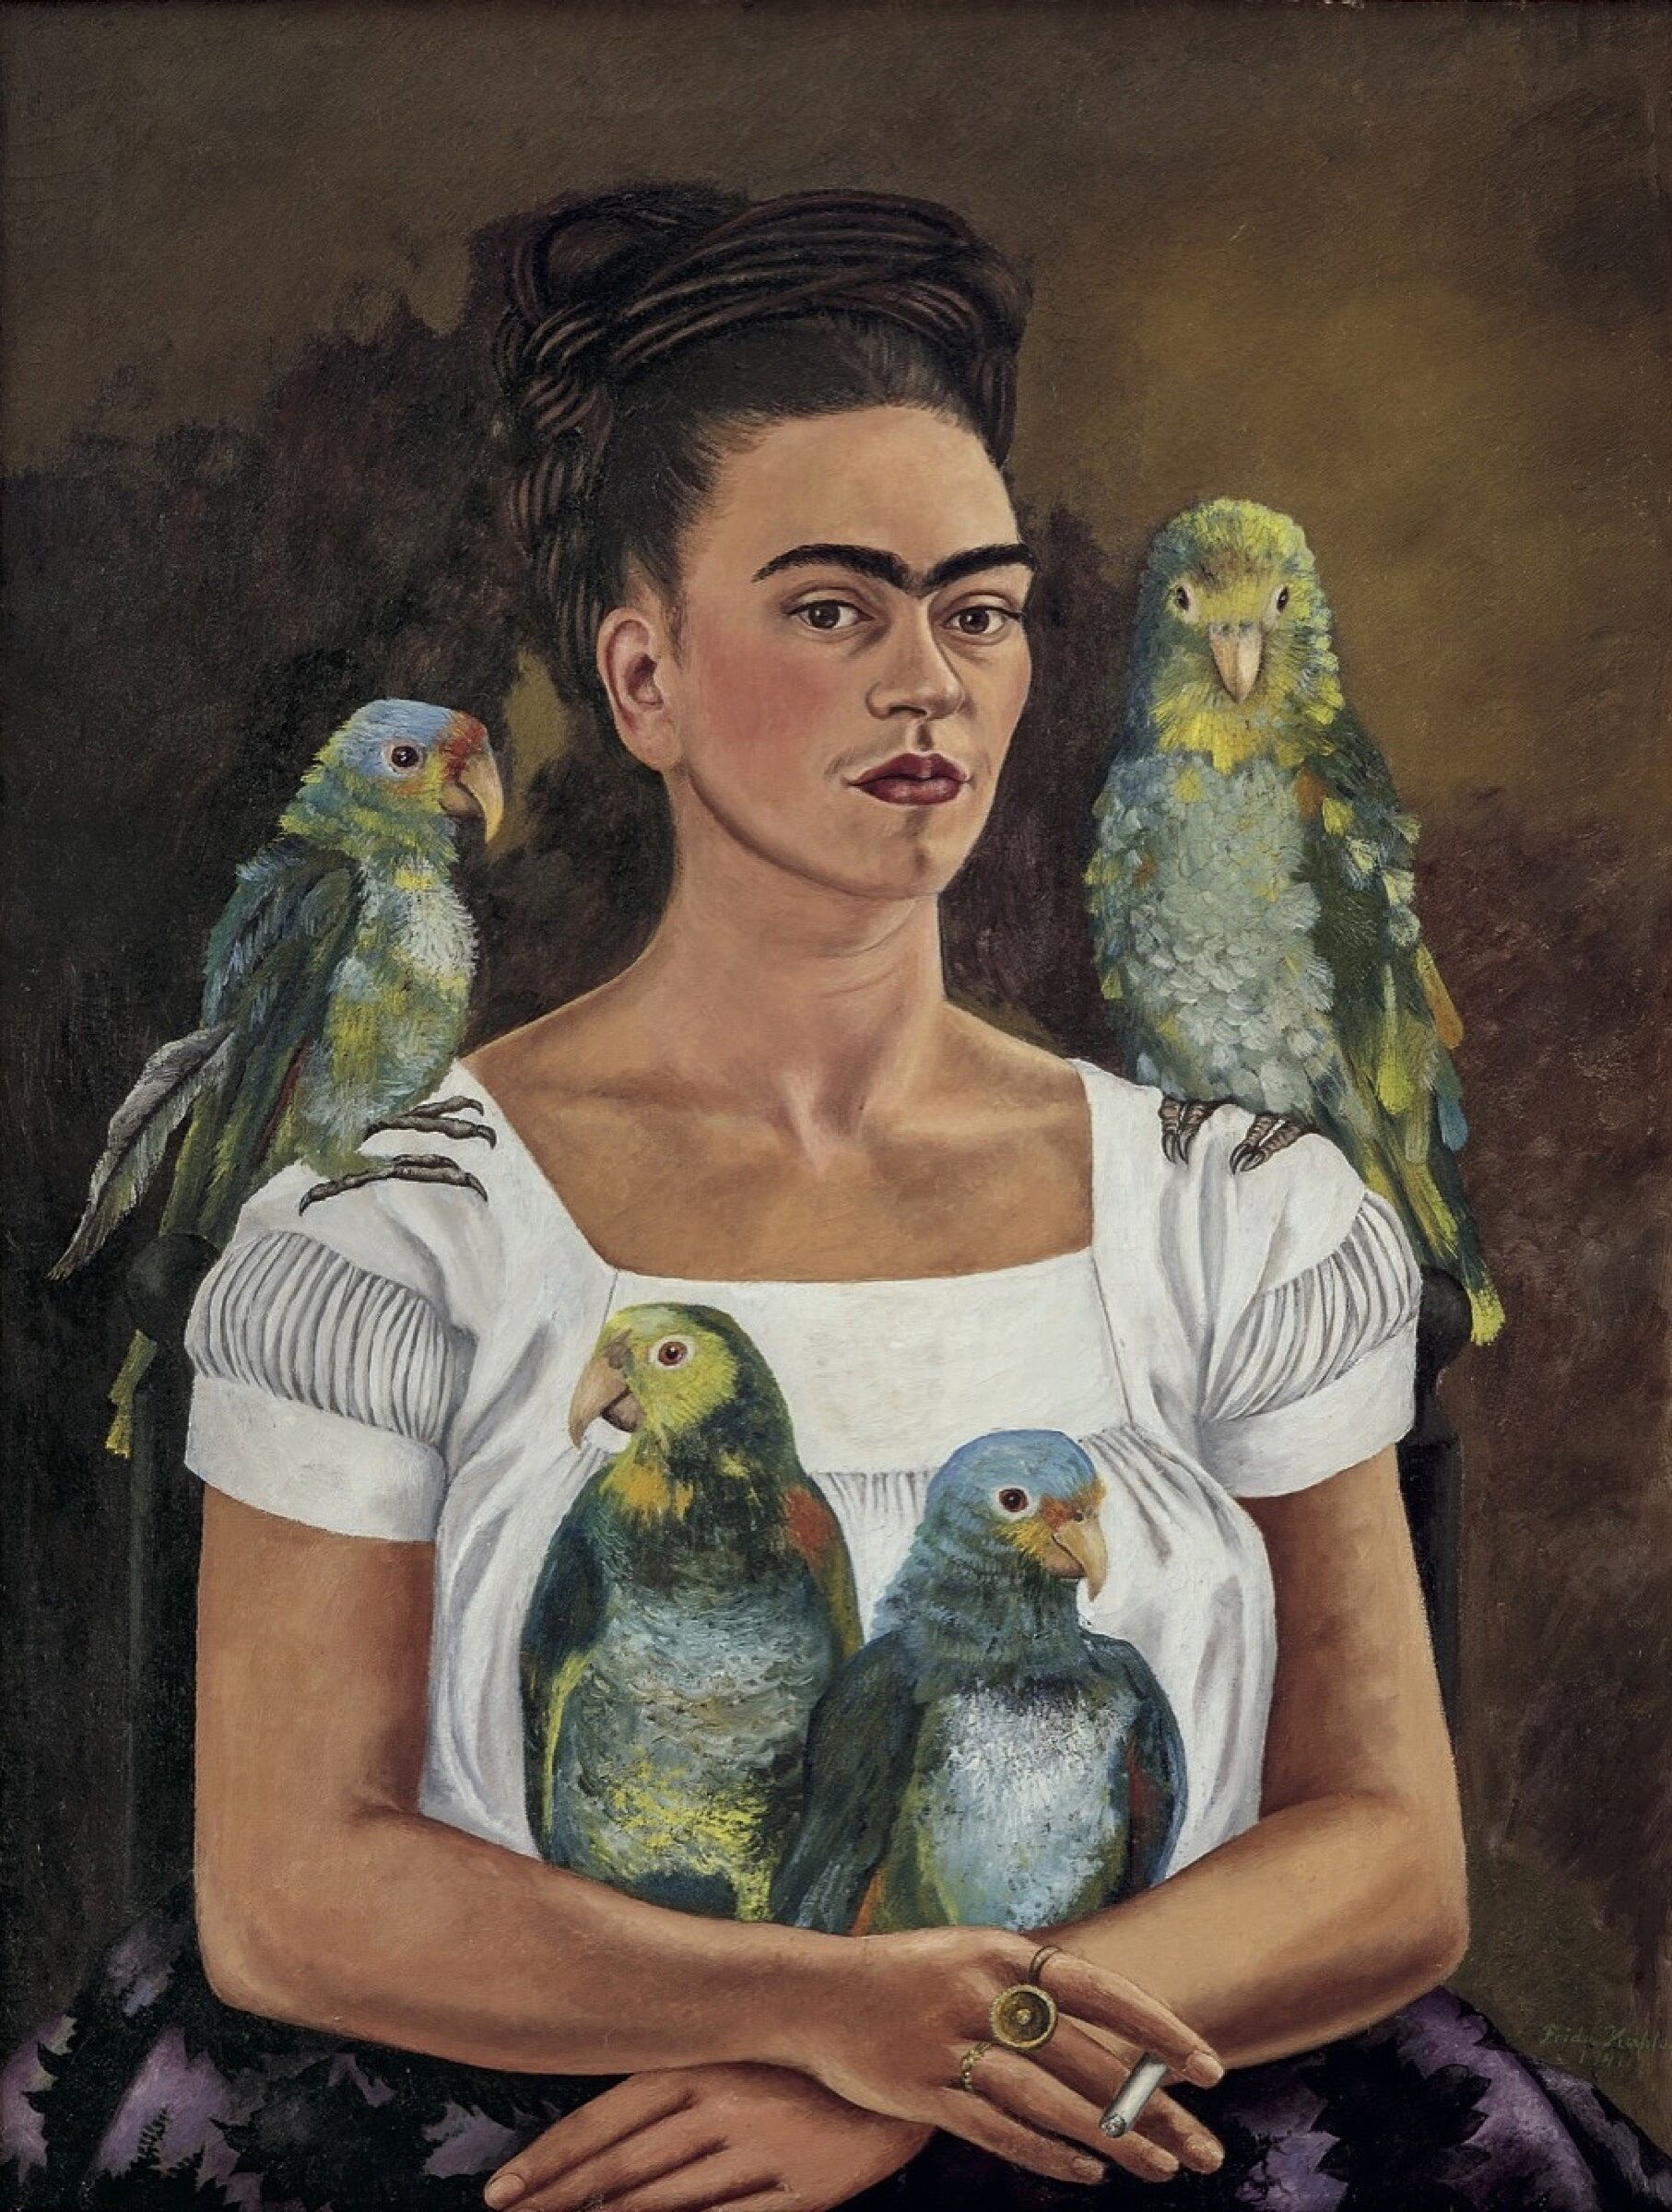 A painting of a woman with parents on her shoulders and in her arms.